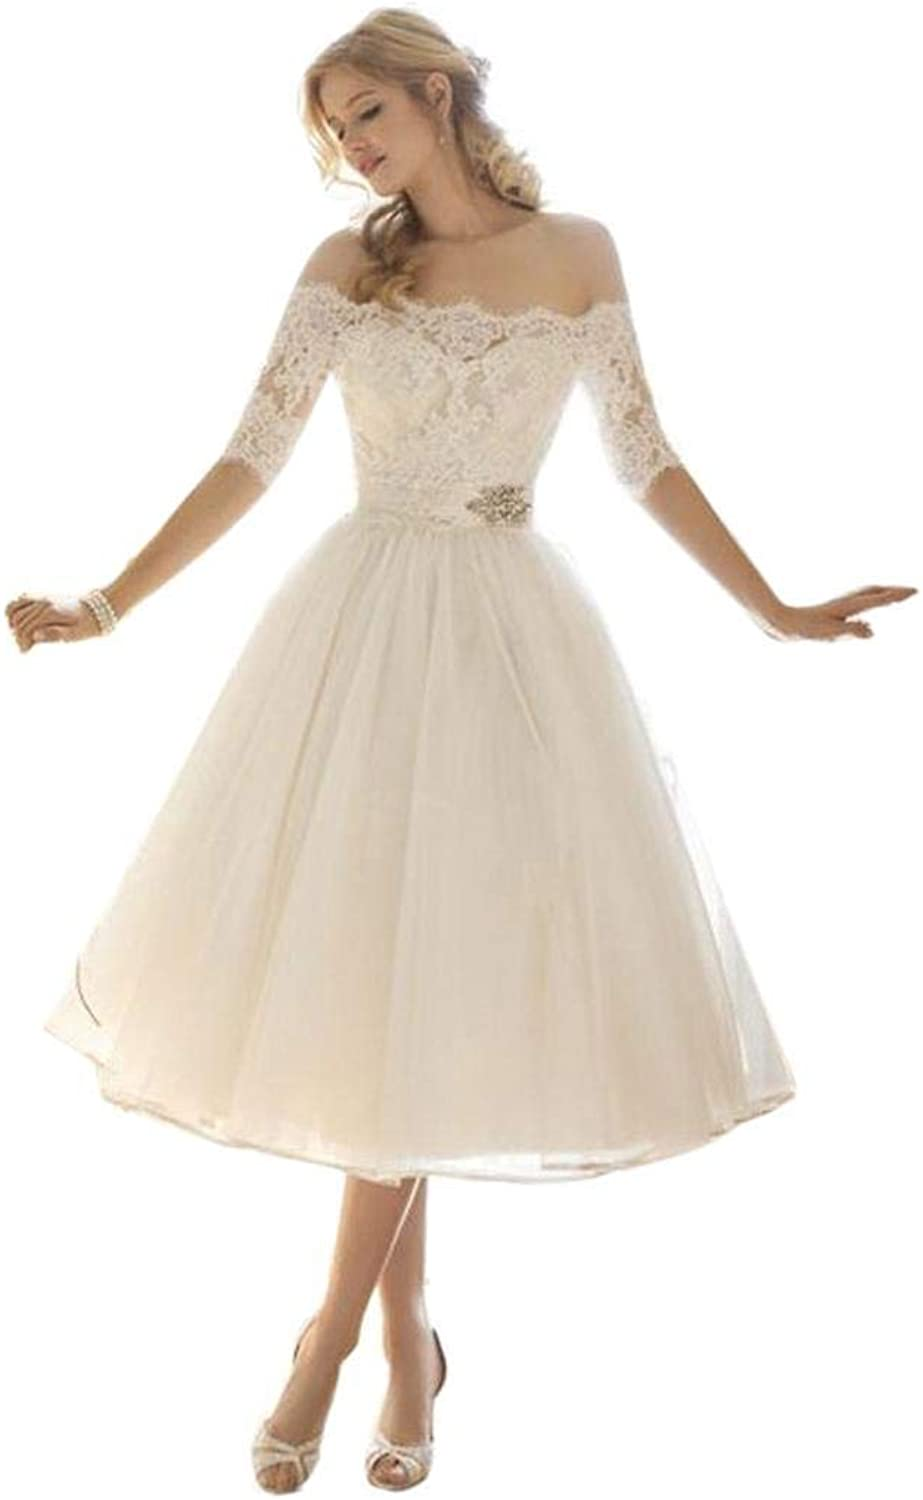 Iekofo  Women Party Wedding Dress Lace Floral See Through White Party Dress